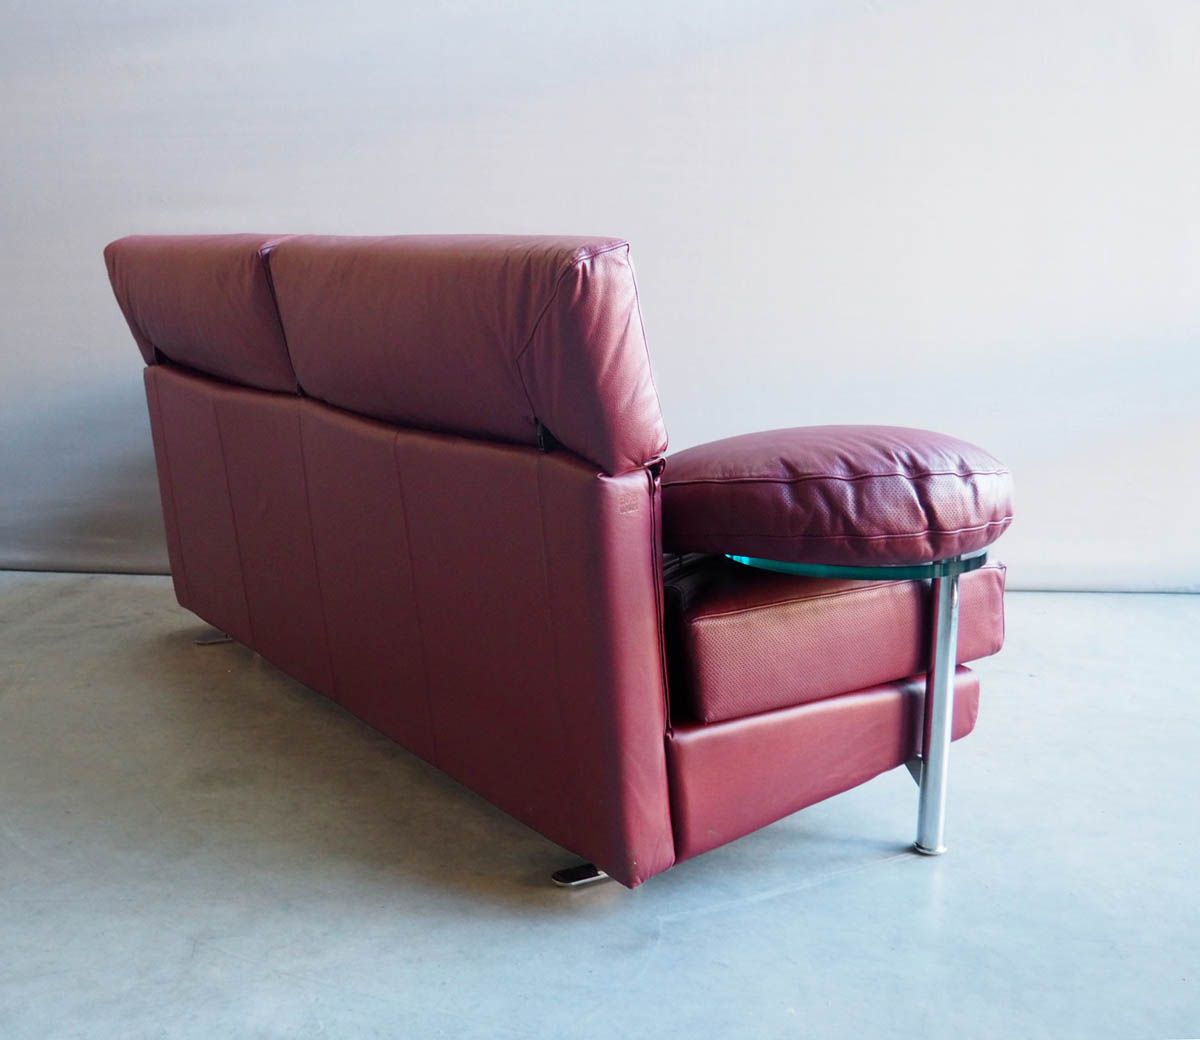 Vintage Red Leather Arca Sofa By Paolo Piva For B B Italia For Sale At Pamono